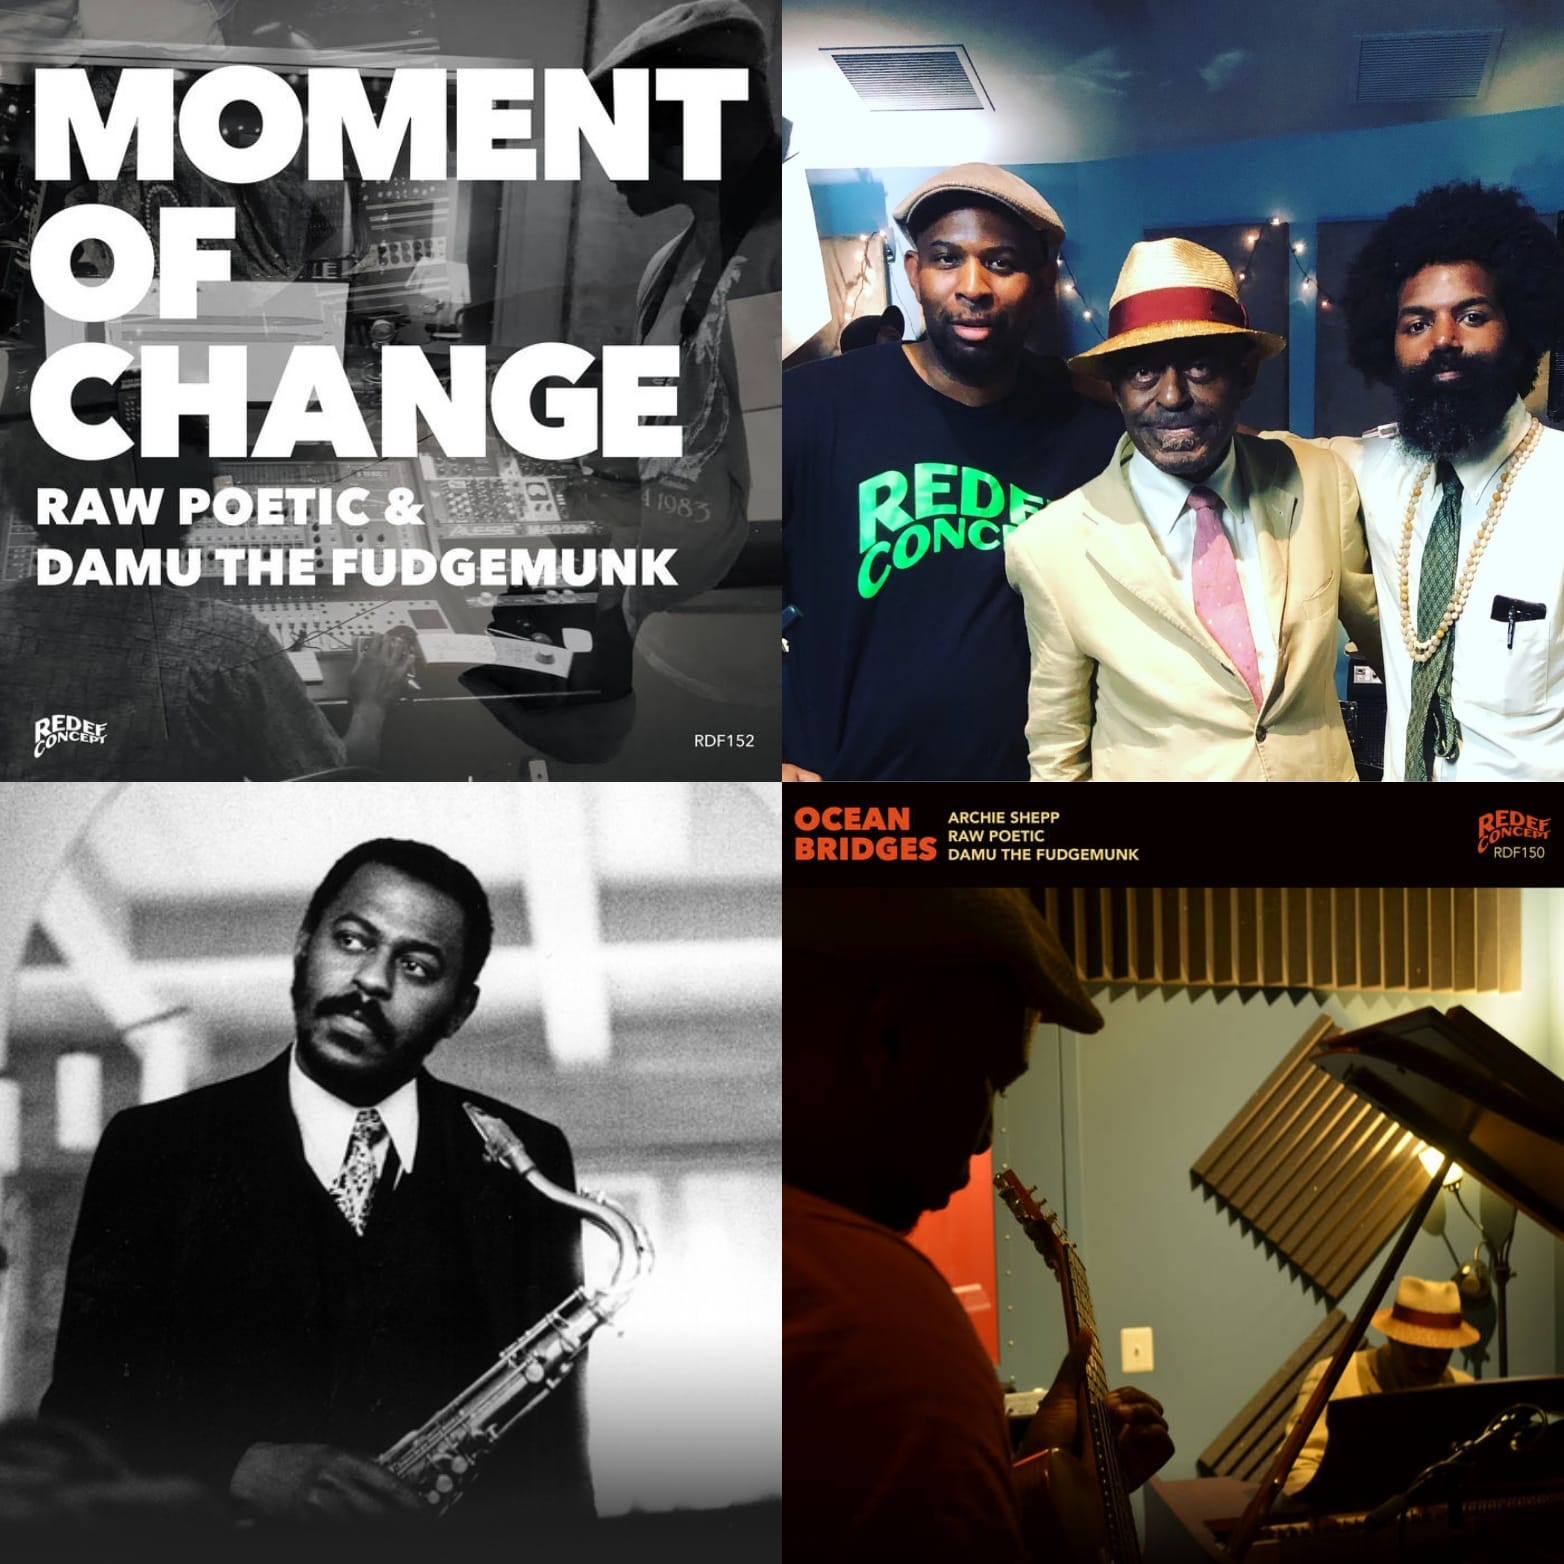 Review: Moment of Change and Ocean Bridges by Archie Shepp, Damu the Fudgemunk, and Raw Poetic